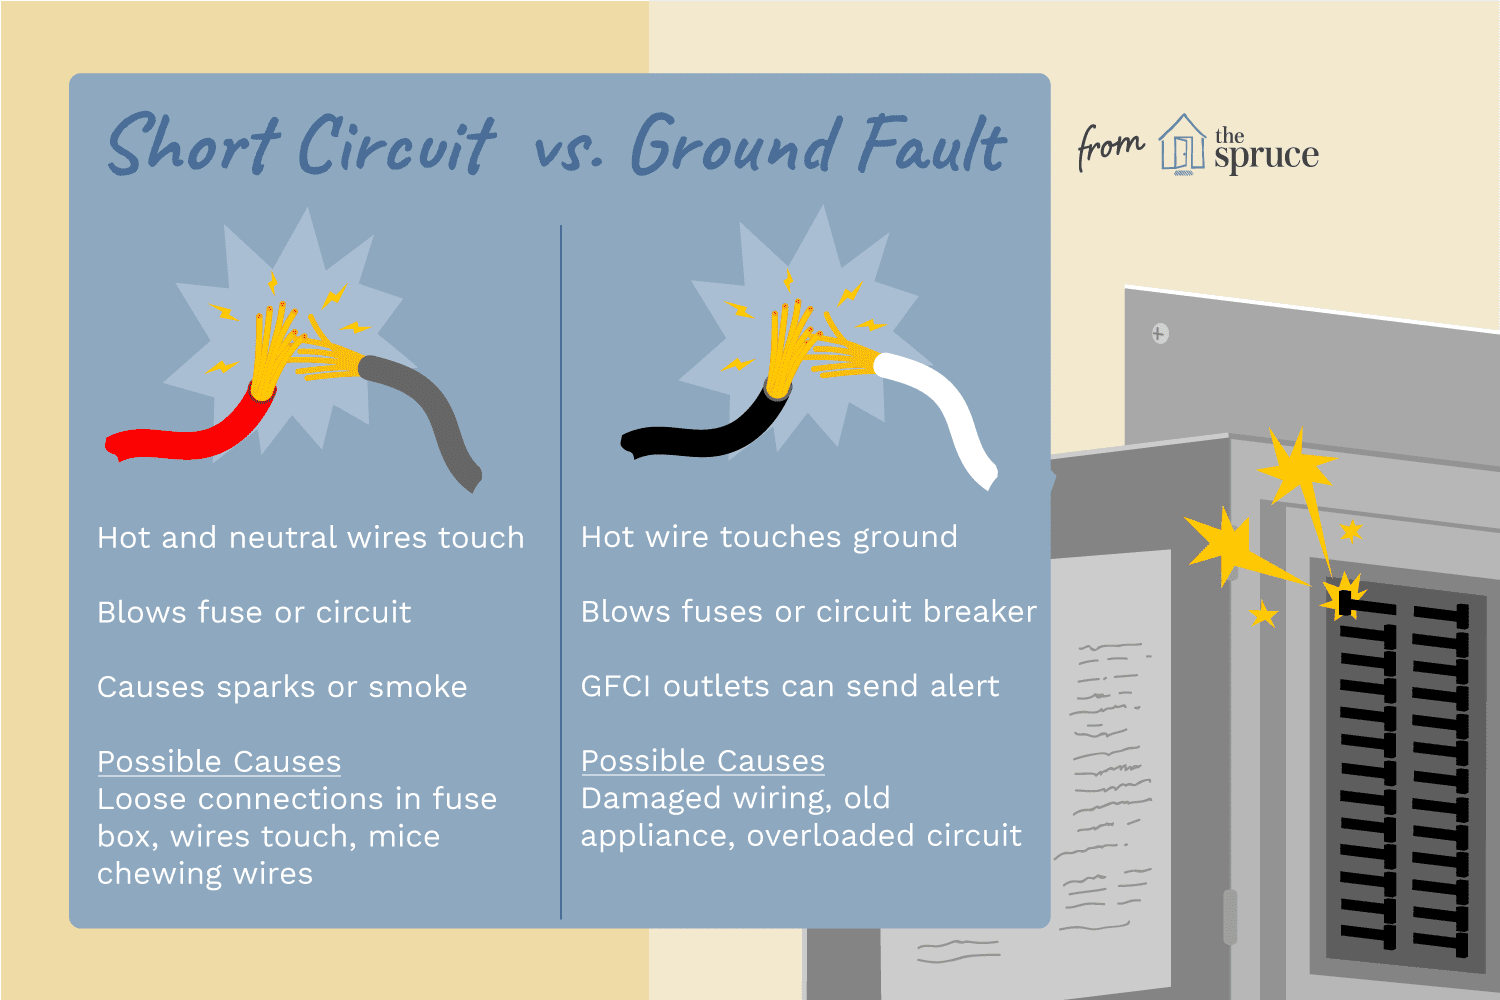 Short Circuit Vs Ground Fault Breakeroverloadmotor Protectornofuse Breakercontrol Difference